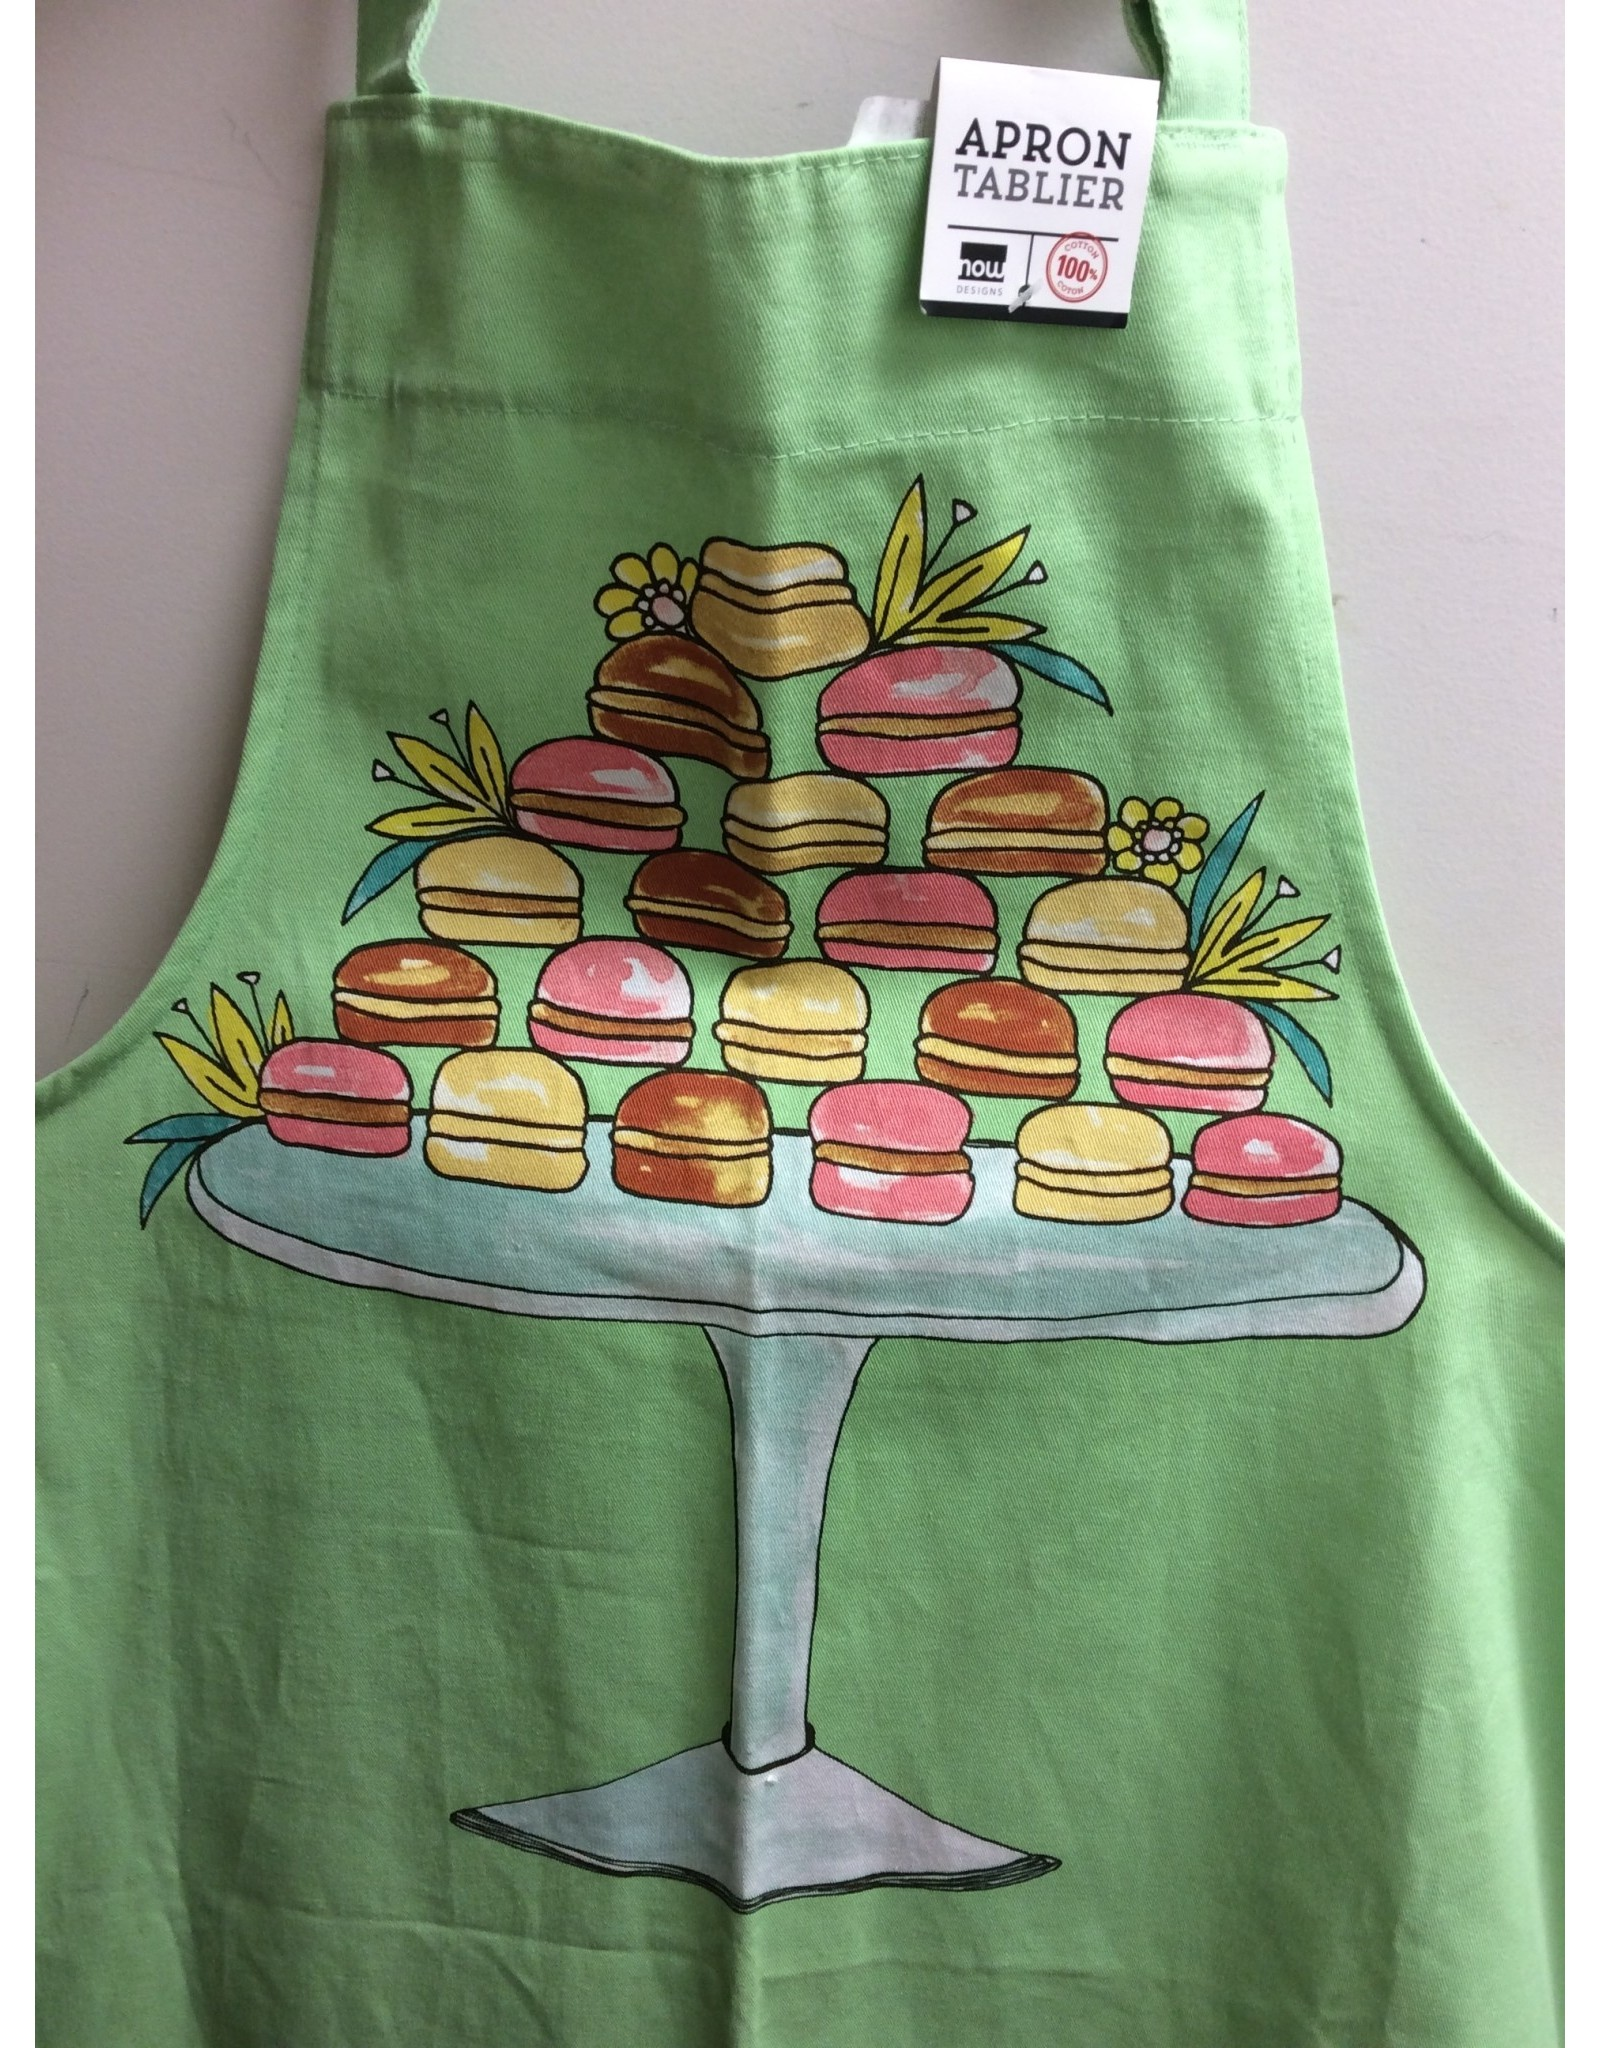 Danica Apron Patterned